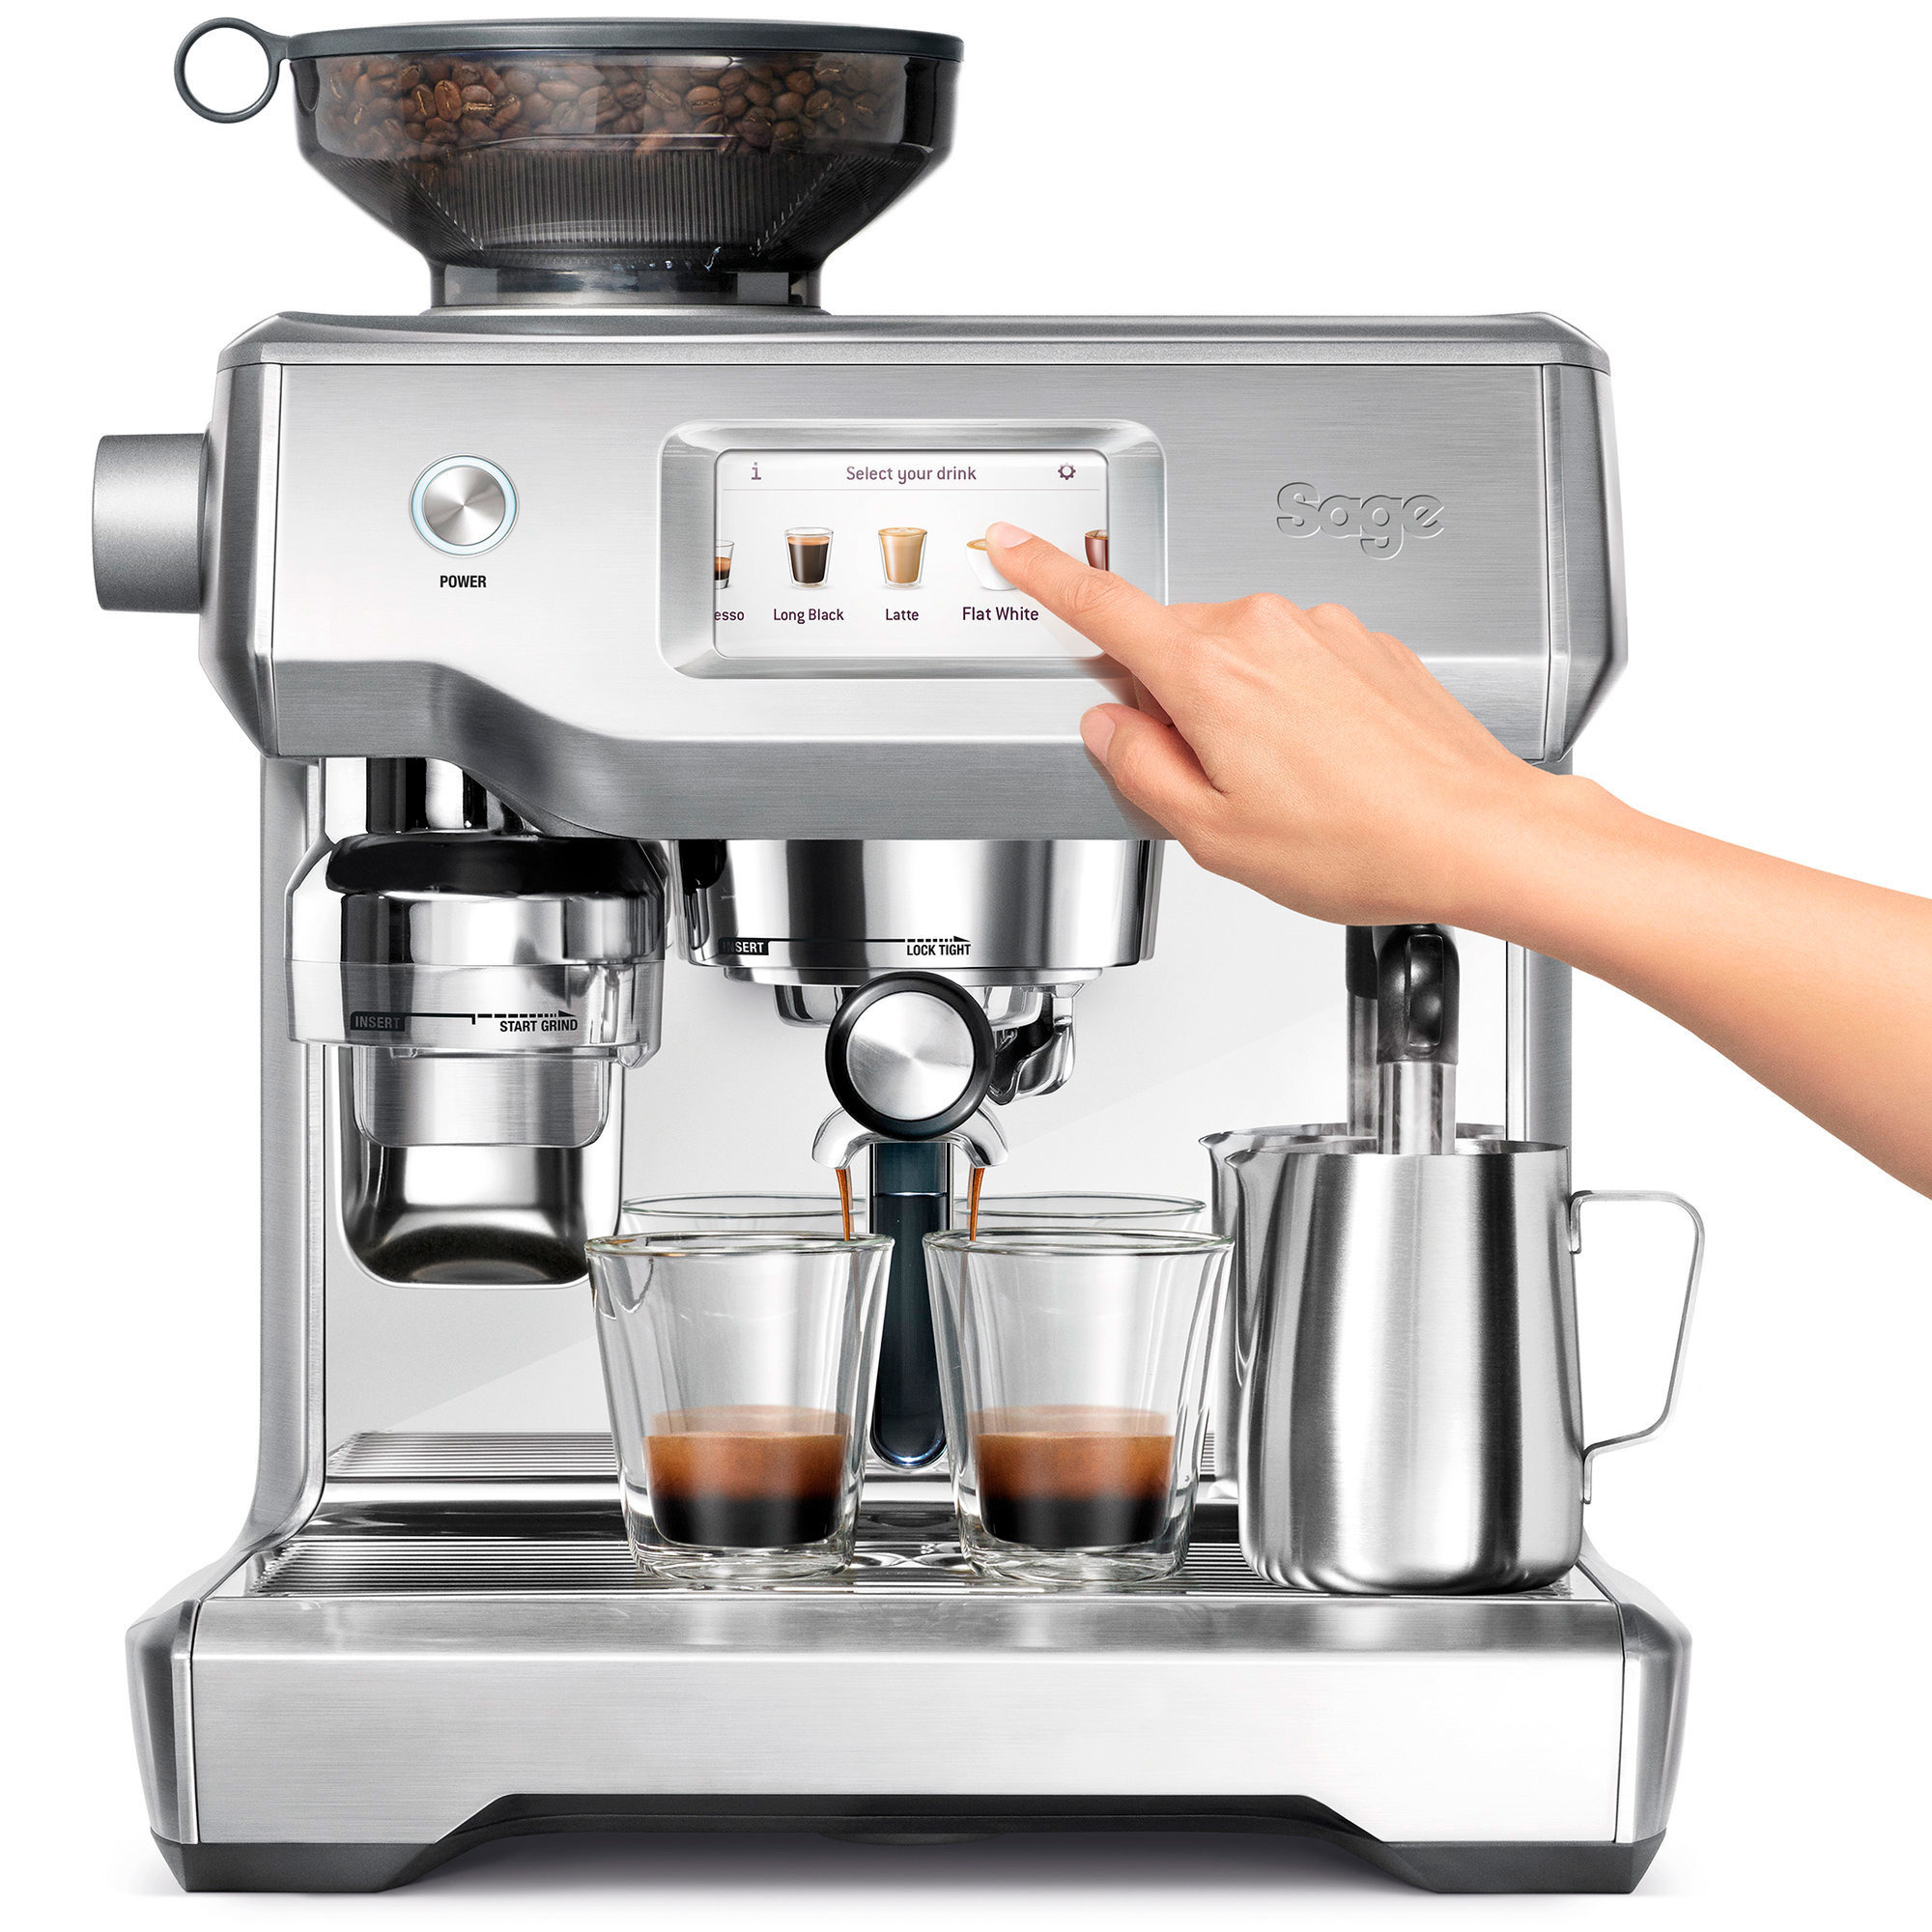 Sage SES990 The Oracle Touch espressomaskin